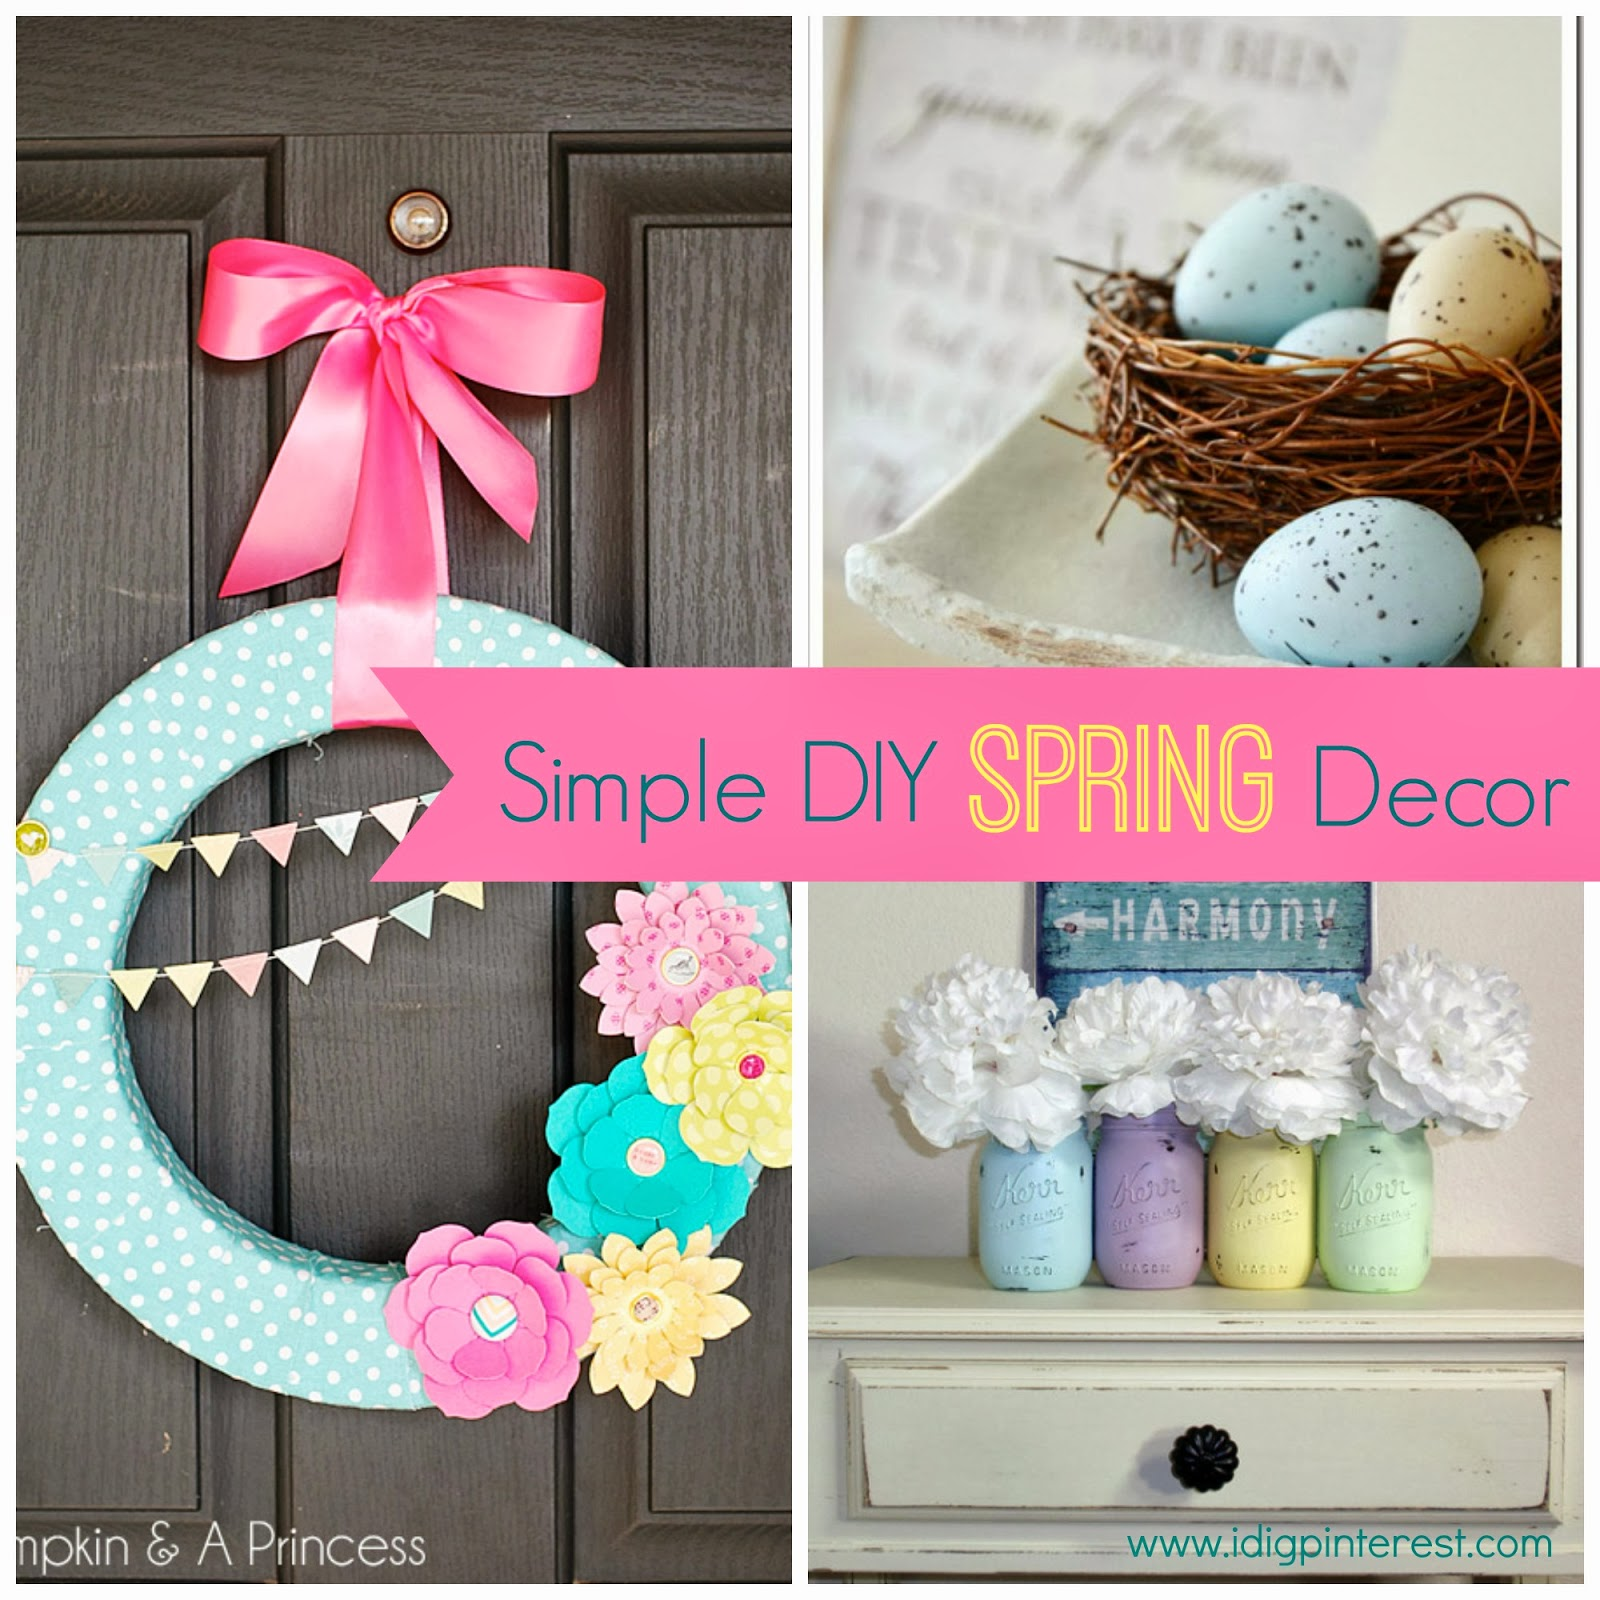 Pinterest Diy Deco Simple Diy Spring Decor Ideas I Dig Pinterest